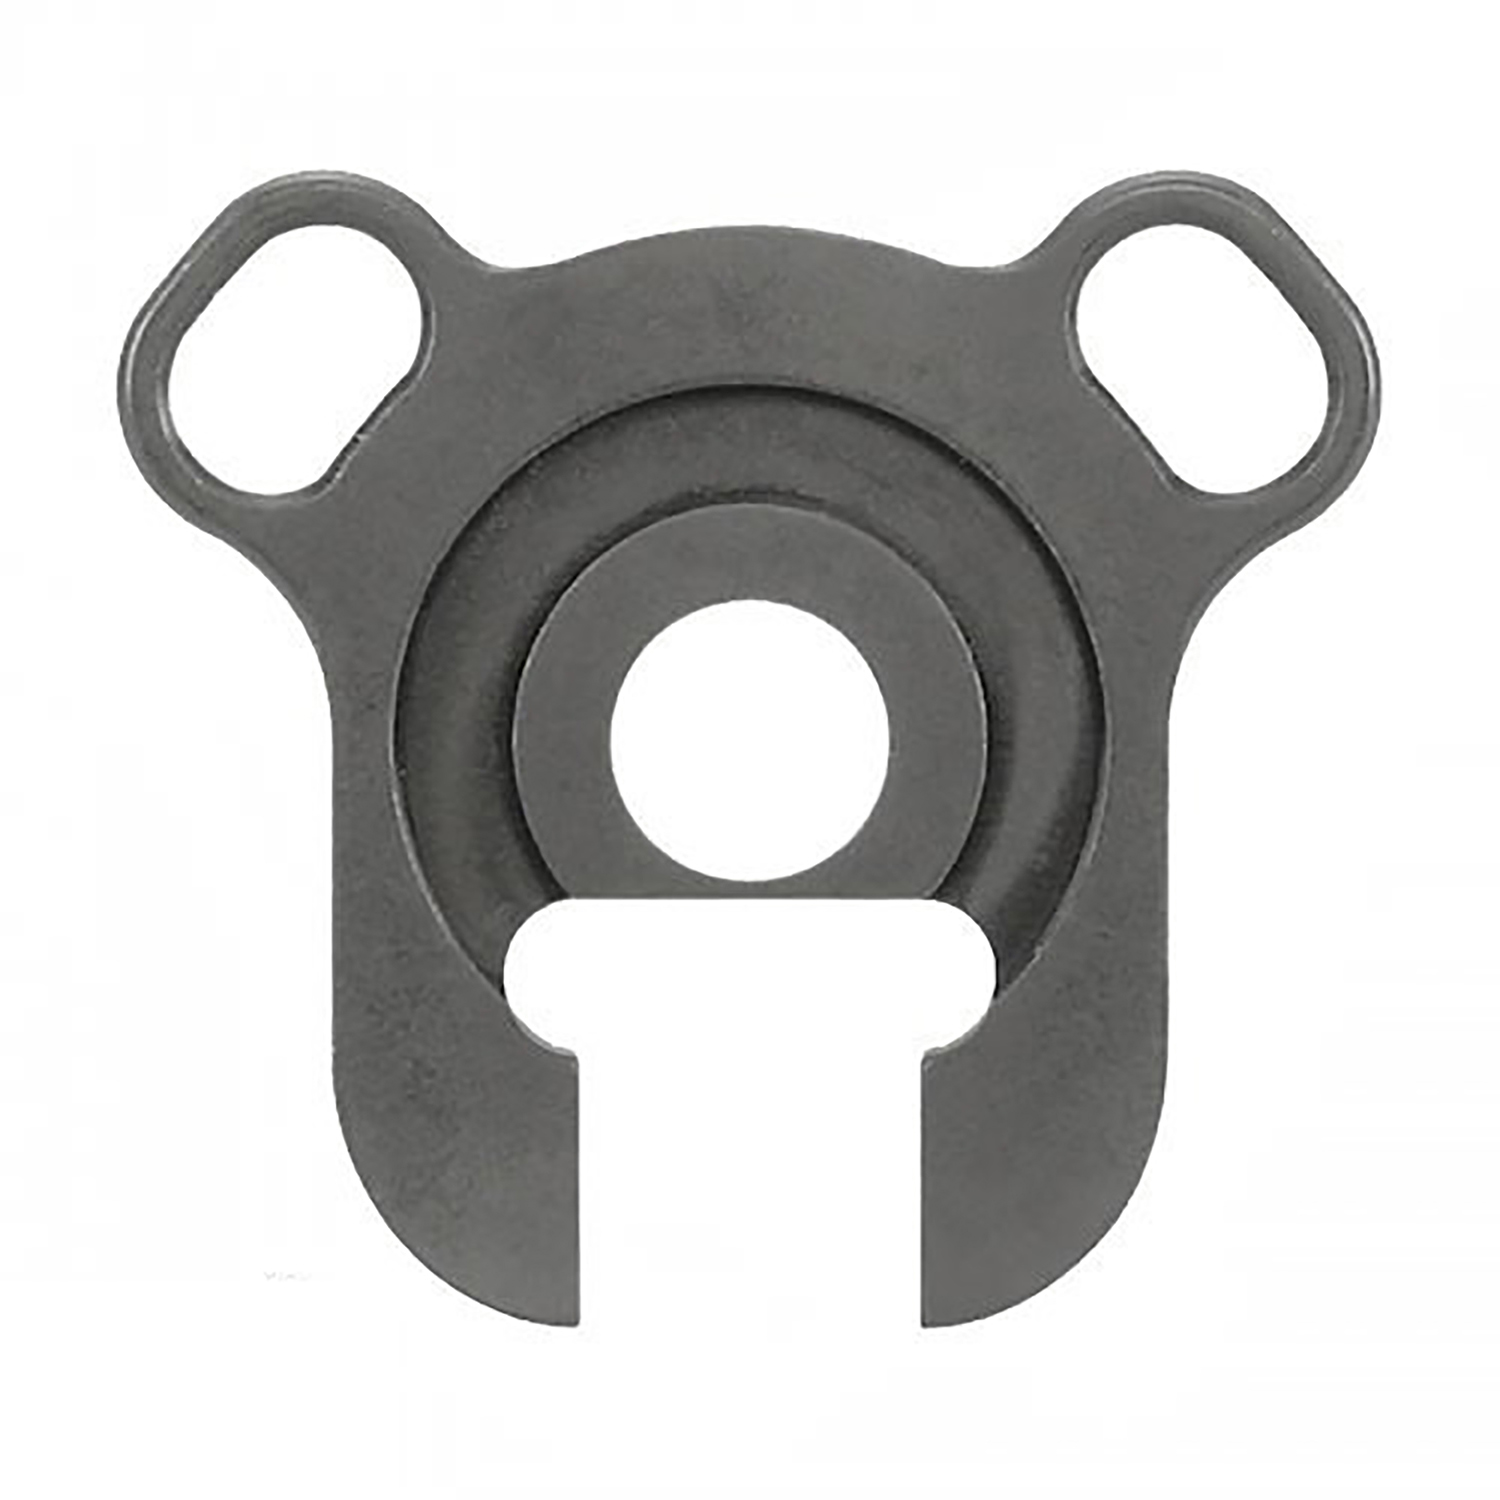 Ergo Double Sling Loop Shotgun End Plate